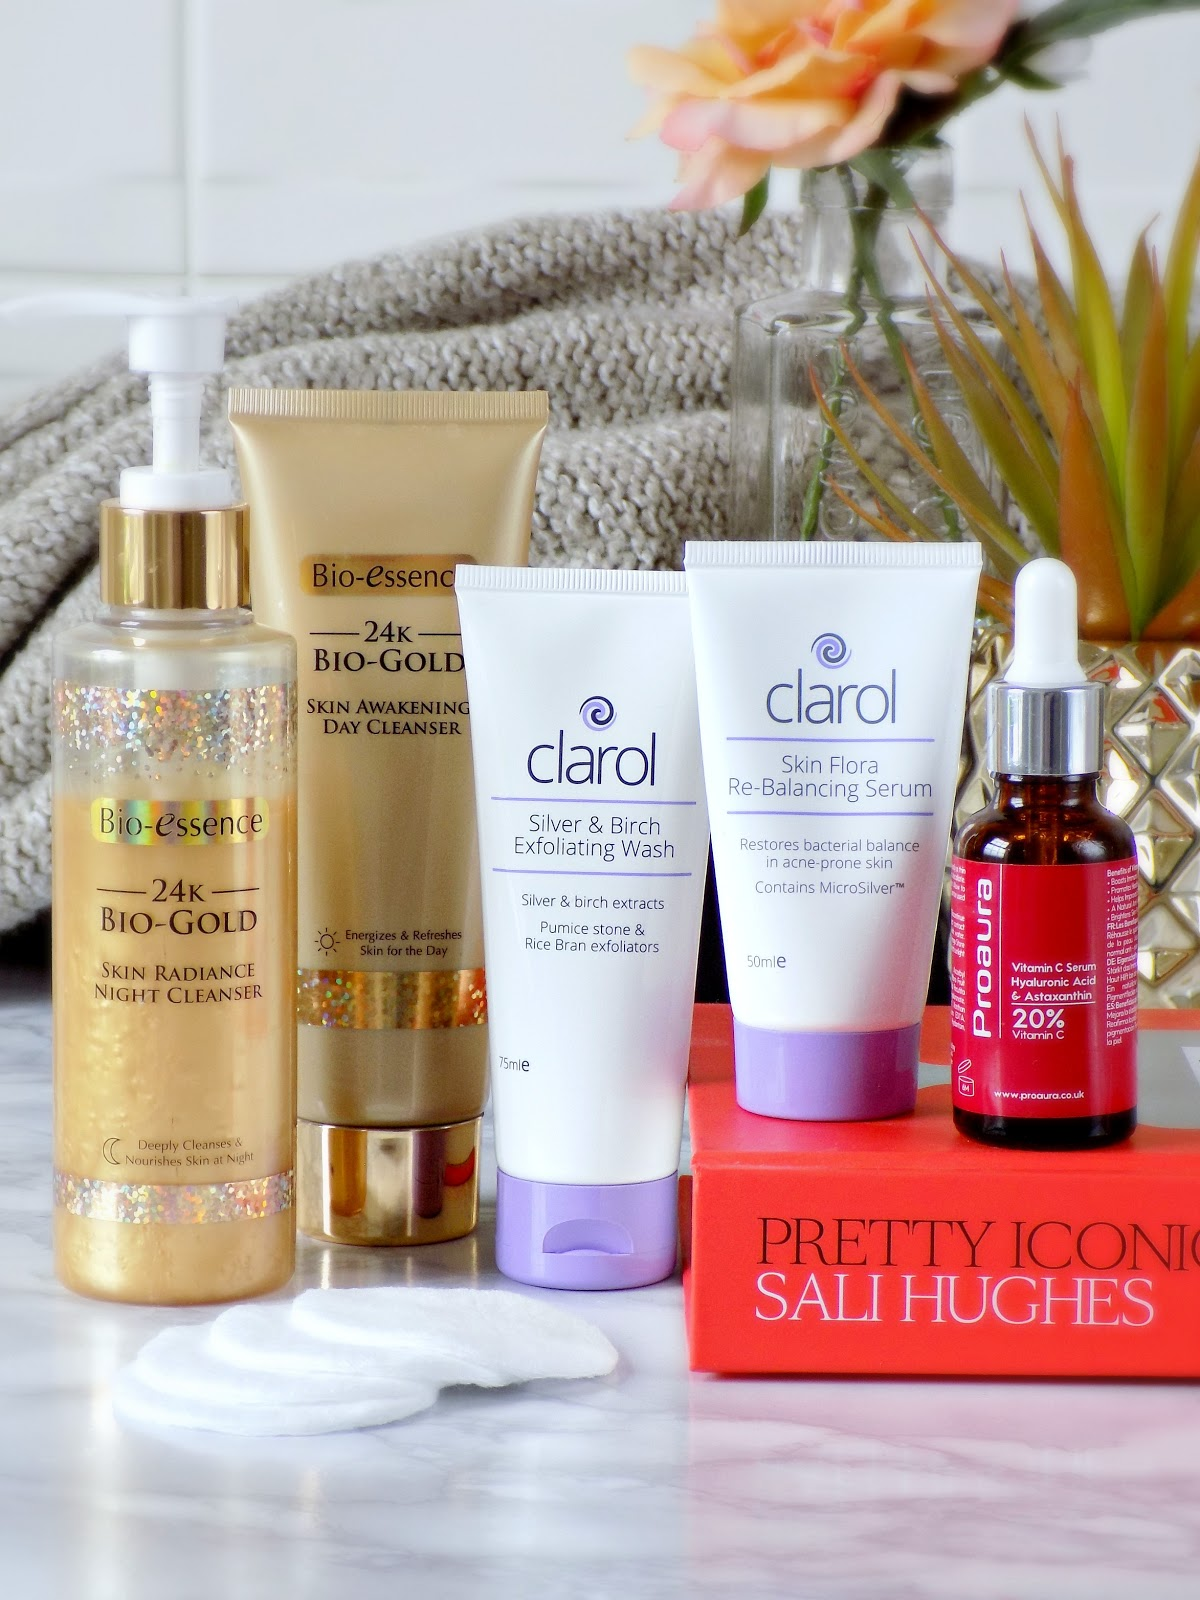 New skincare on trial, Bio-essence, Proaura, Clarol